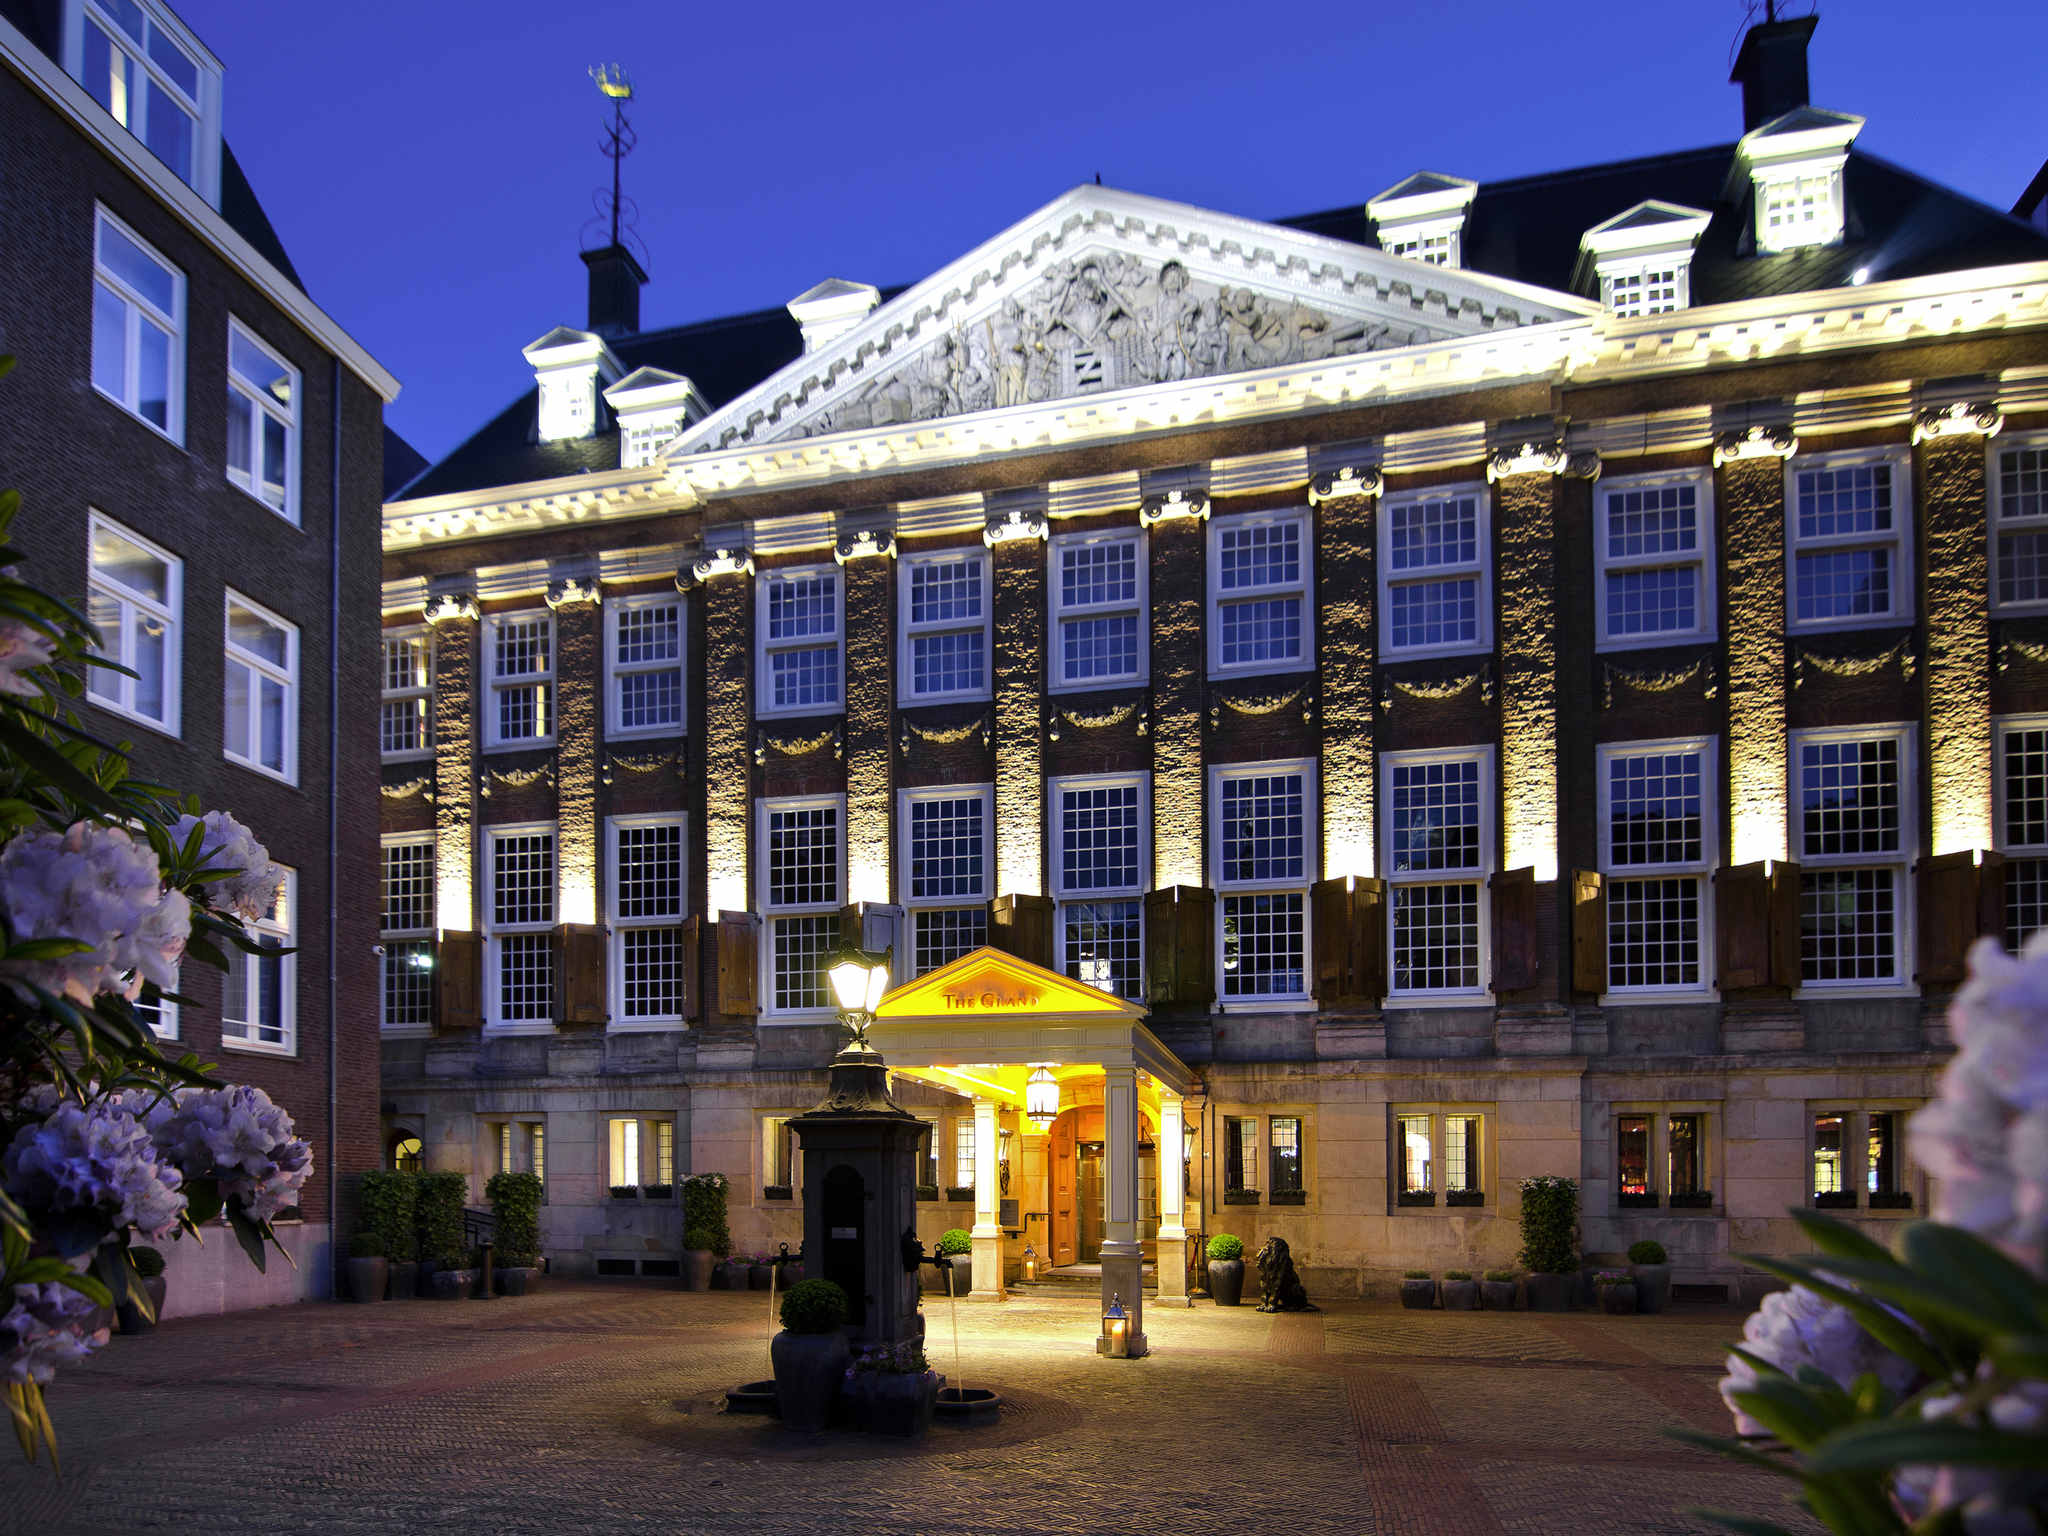 Hotel - Sofitel Legend The Grand Amsterdam